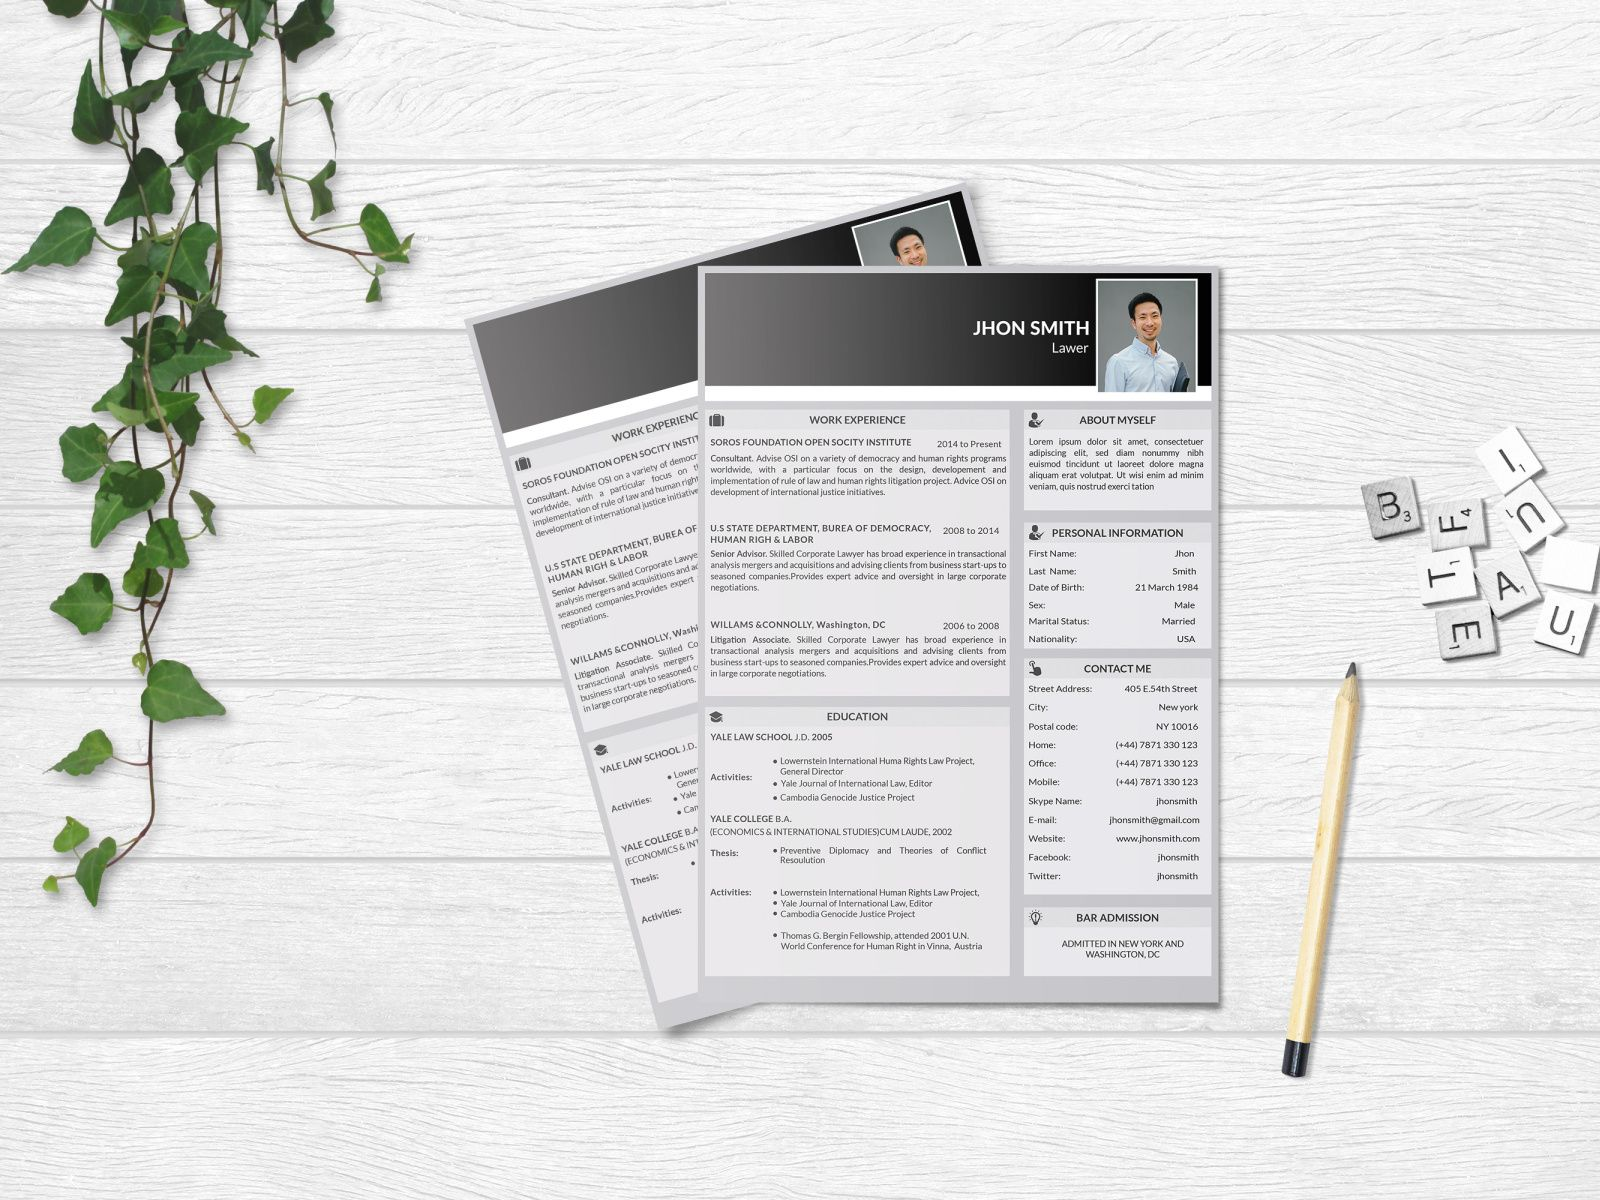 Free Lawyer Resume Template - Resume template, Resume design template, Resume template free, Templates, Resume templates, Resume - Free Lawyer Resume template for job seeker with clean and general layout  This free resume template available in multiple file format, so you can use your favourite software for edit this resume